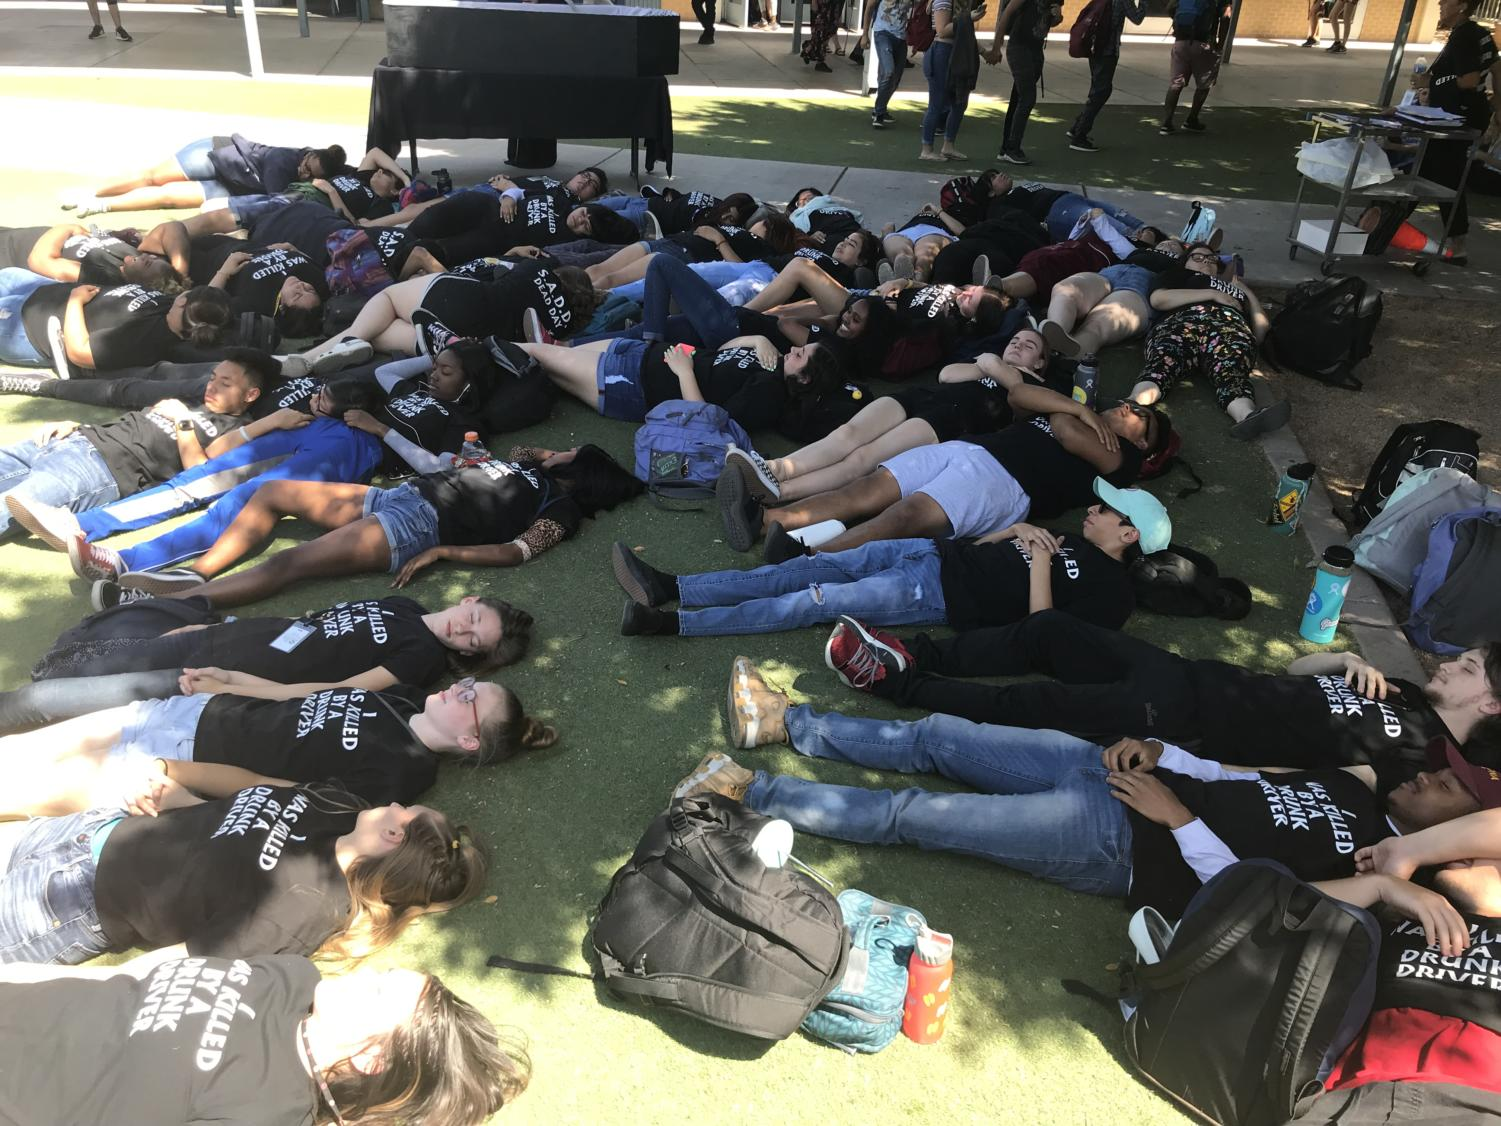 Students lay out on Senior Lawn donning shirts that say